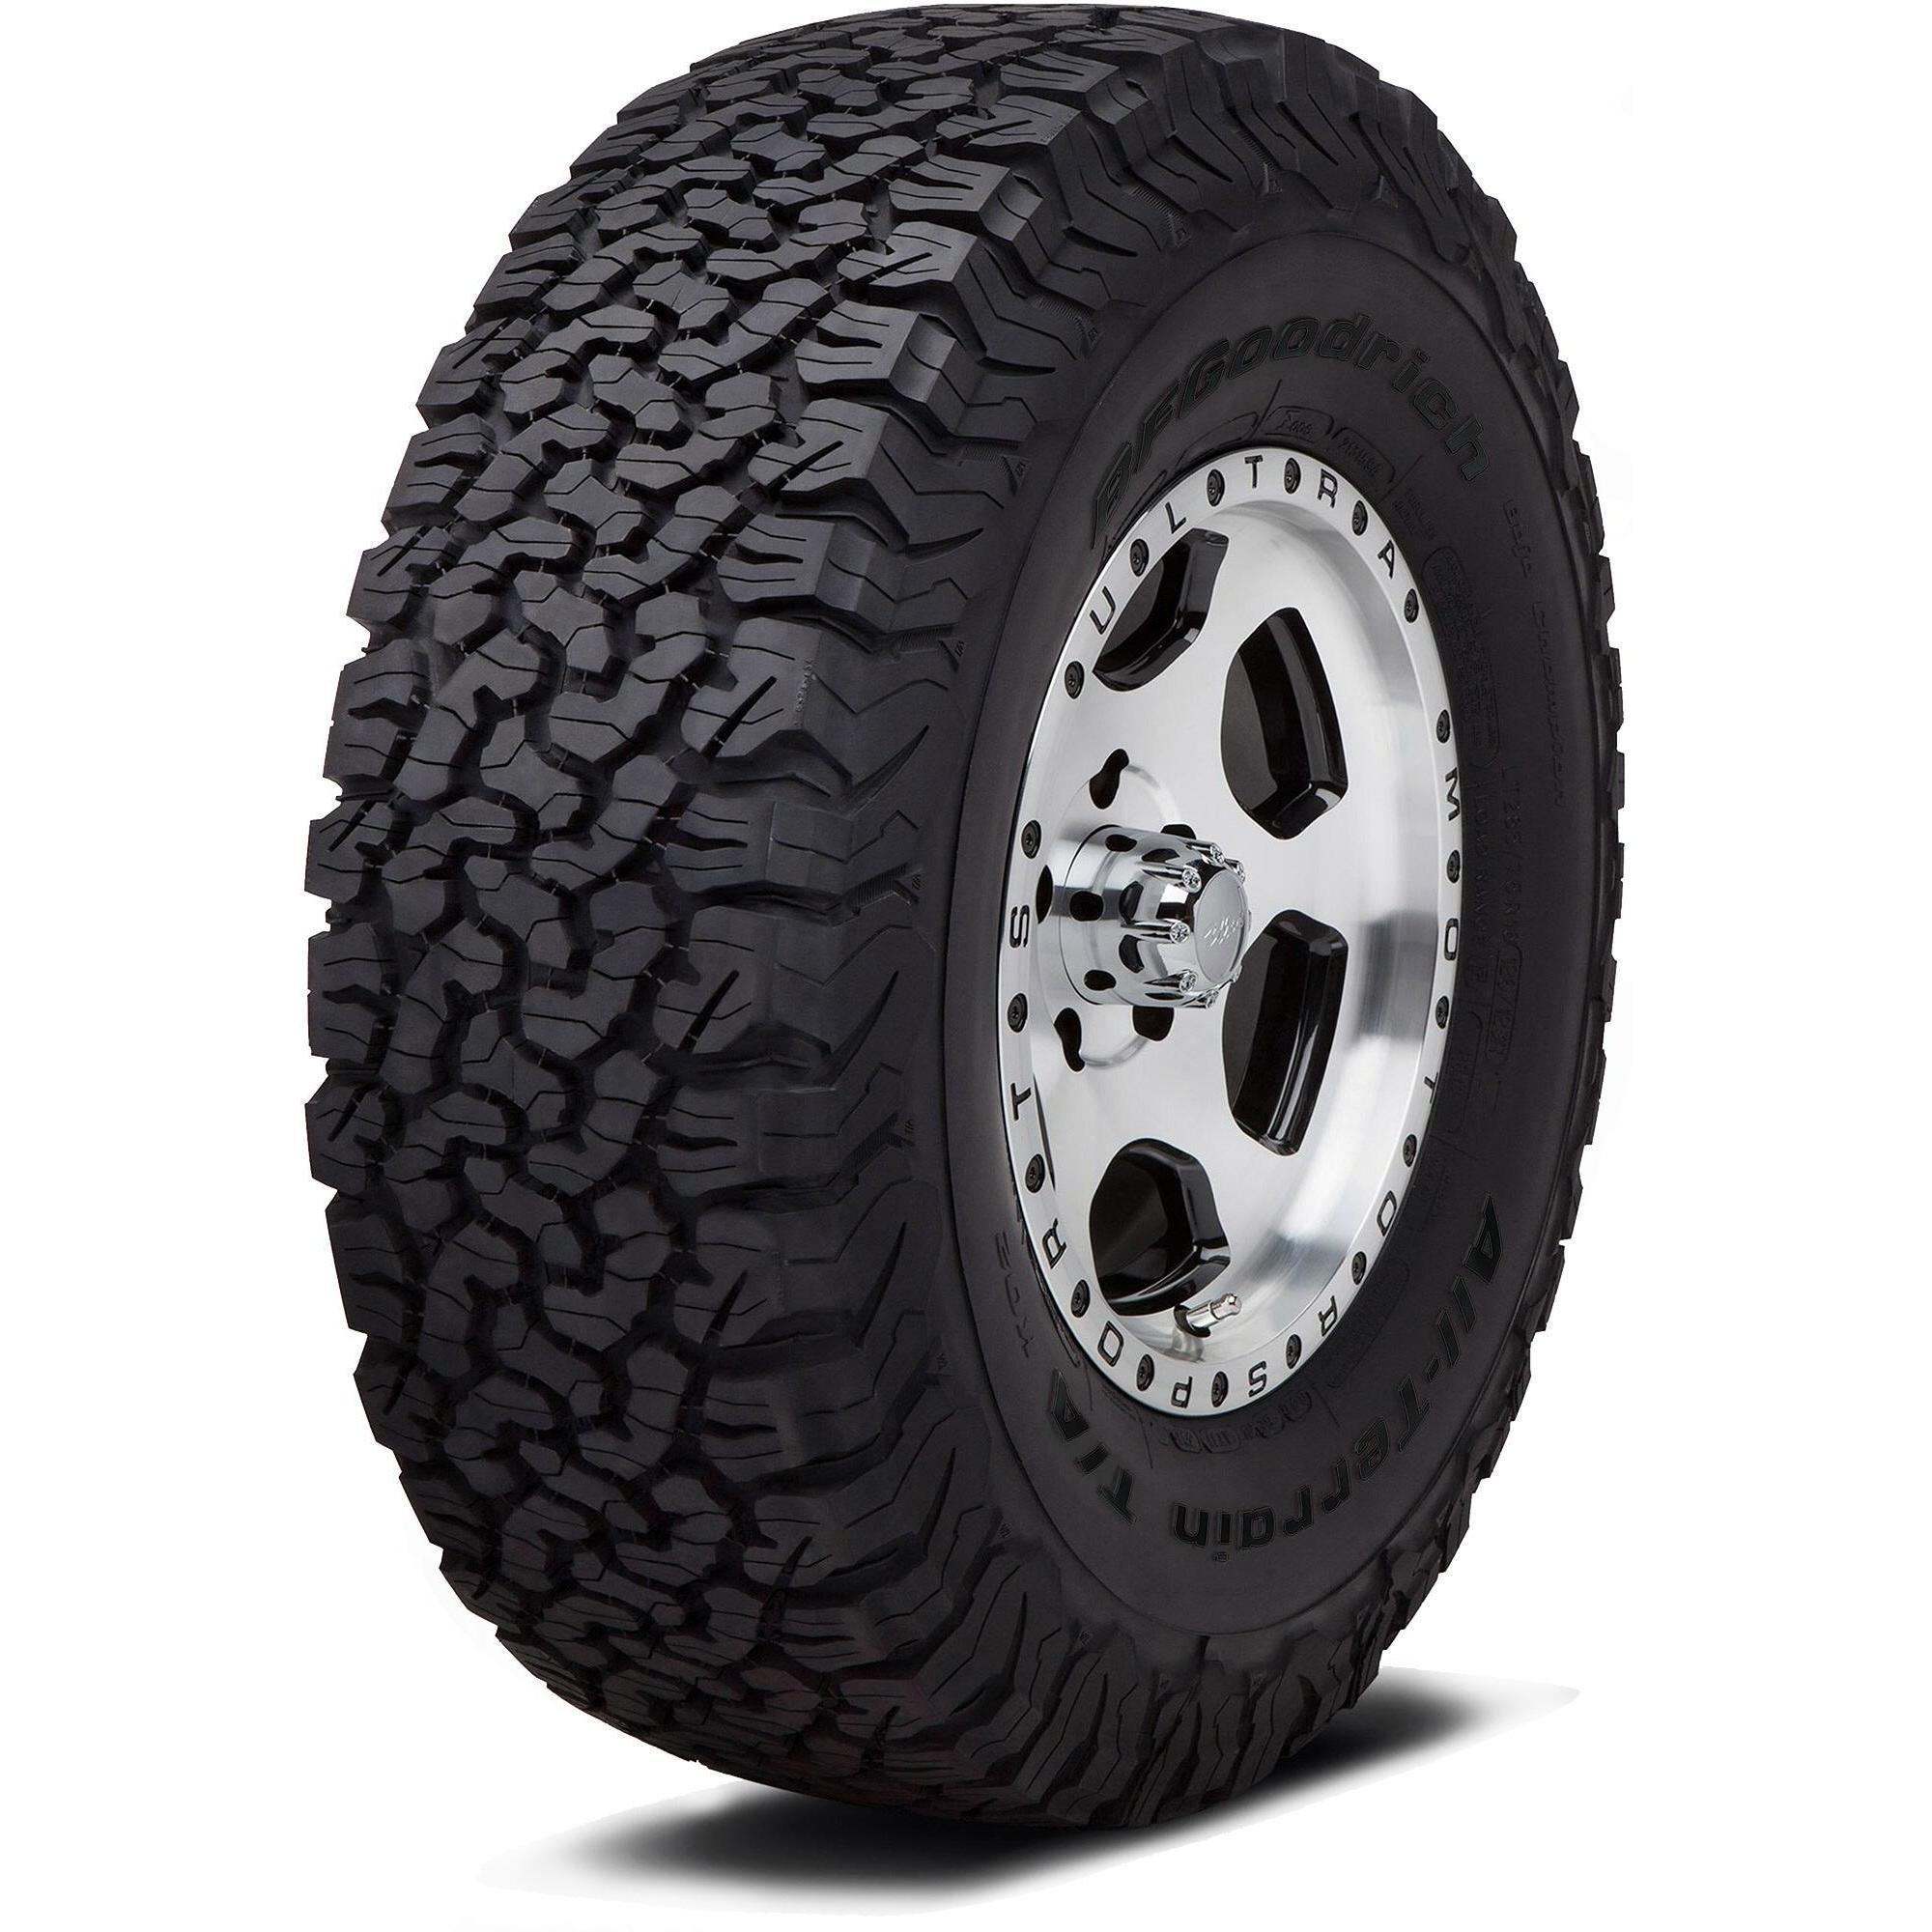 Bf Goodrich K02 >> Bf Goodrich All Terrain T A Ko2 Tirebuyer